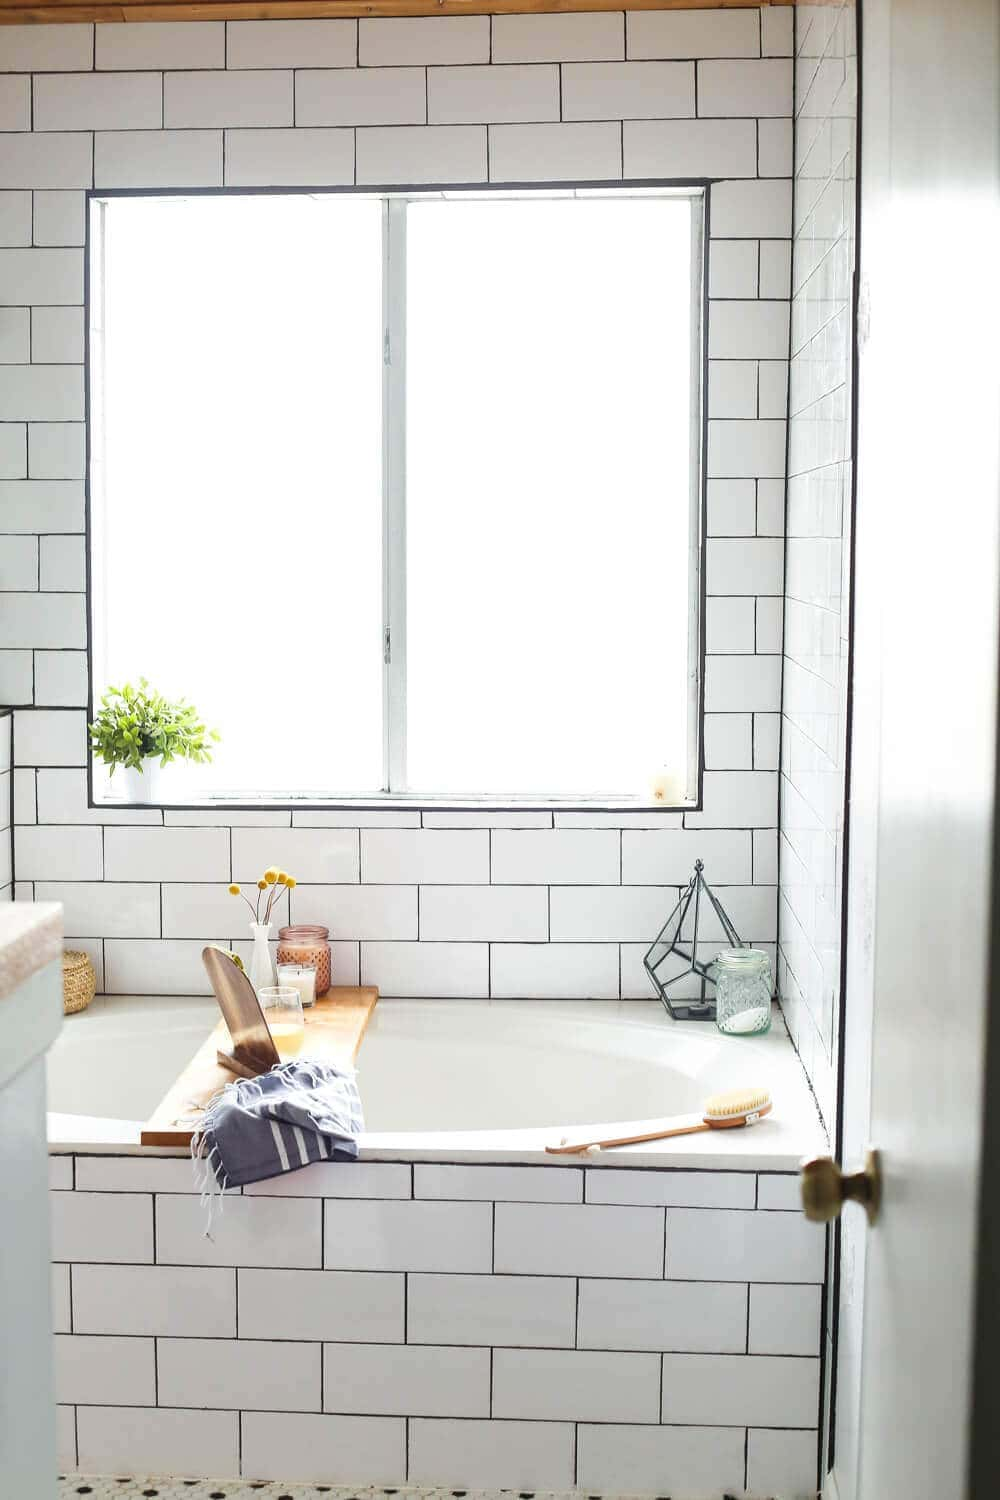 bathtub with a DIY tray